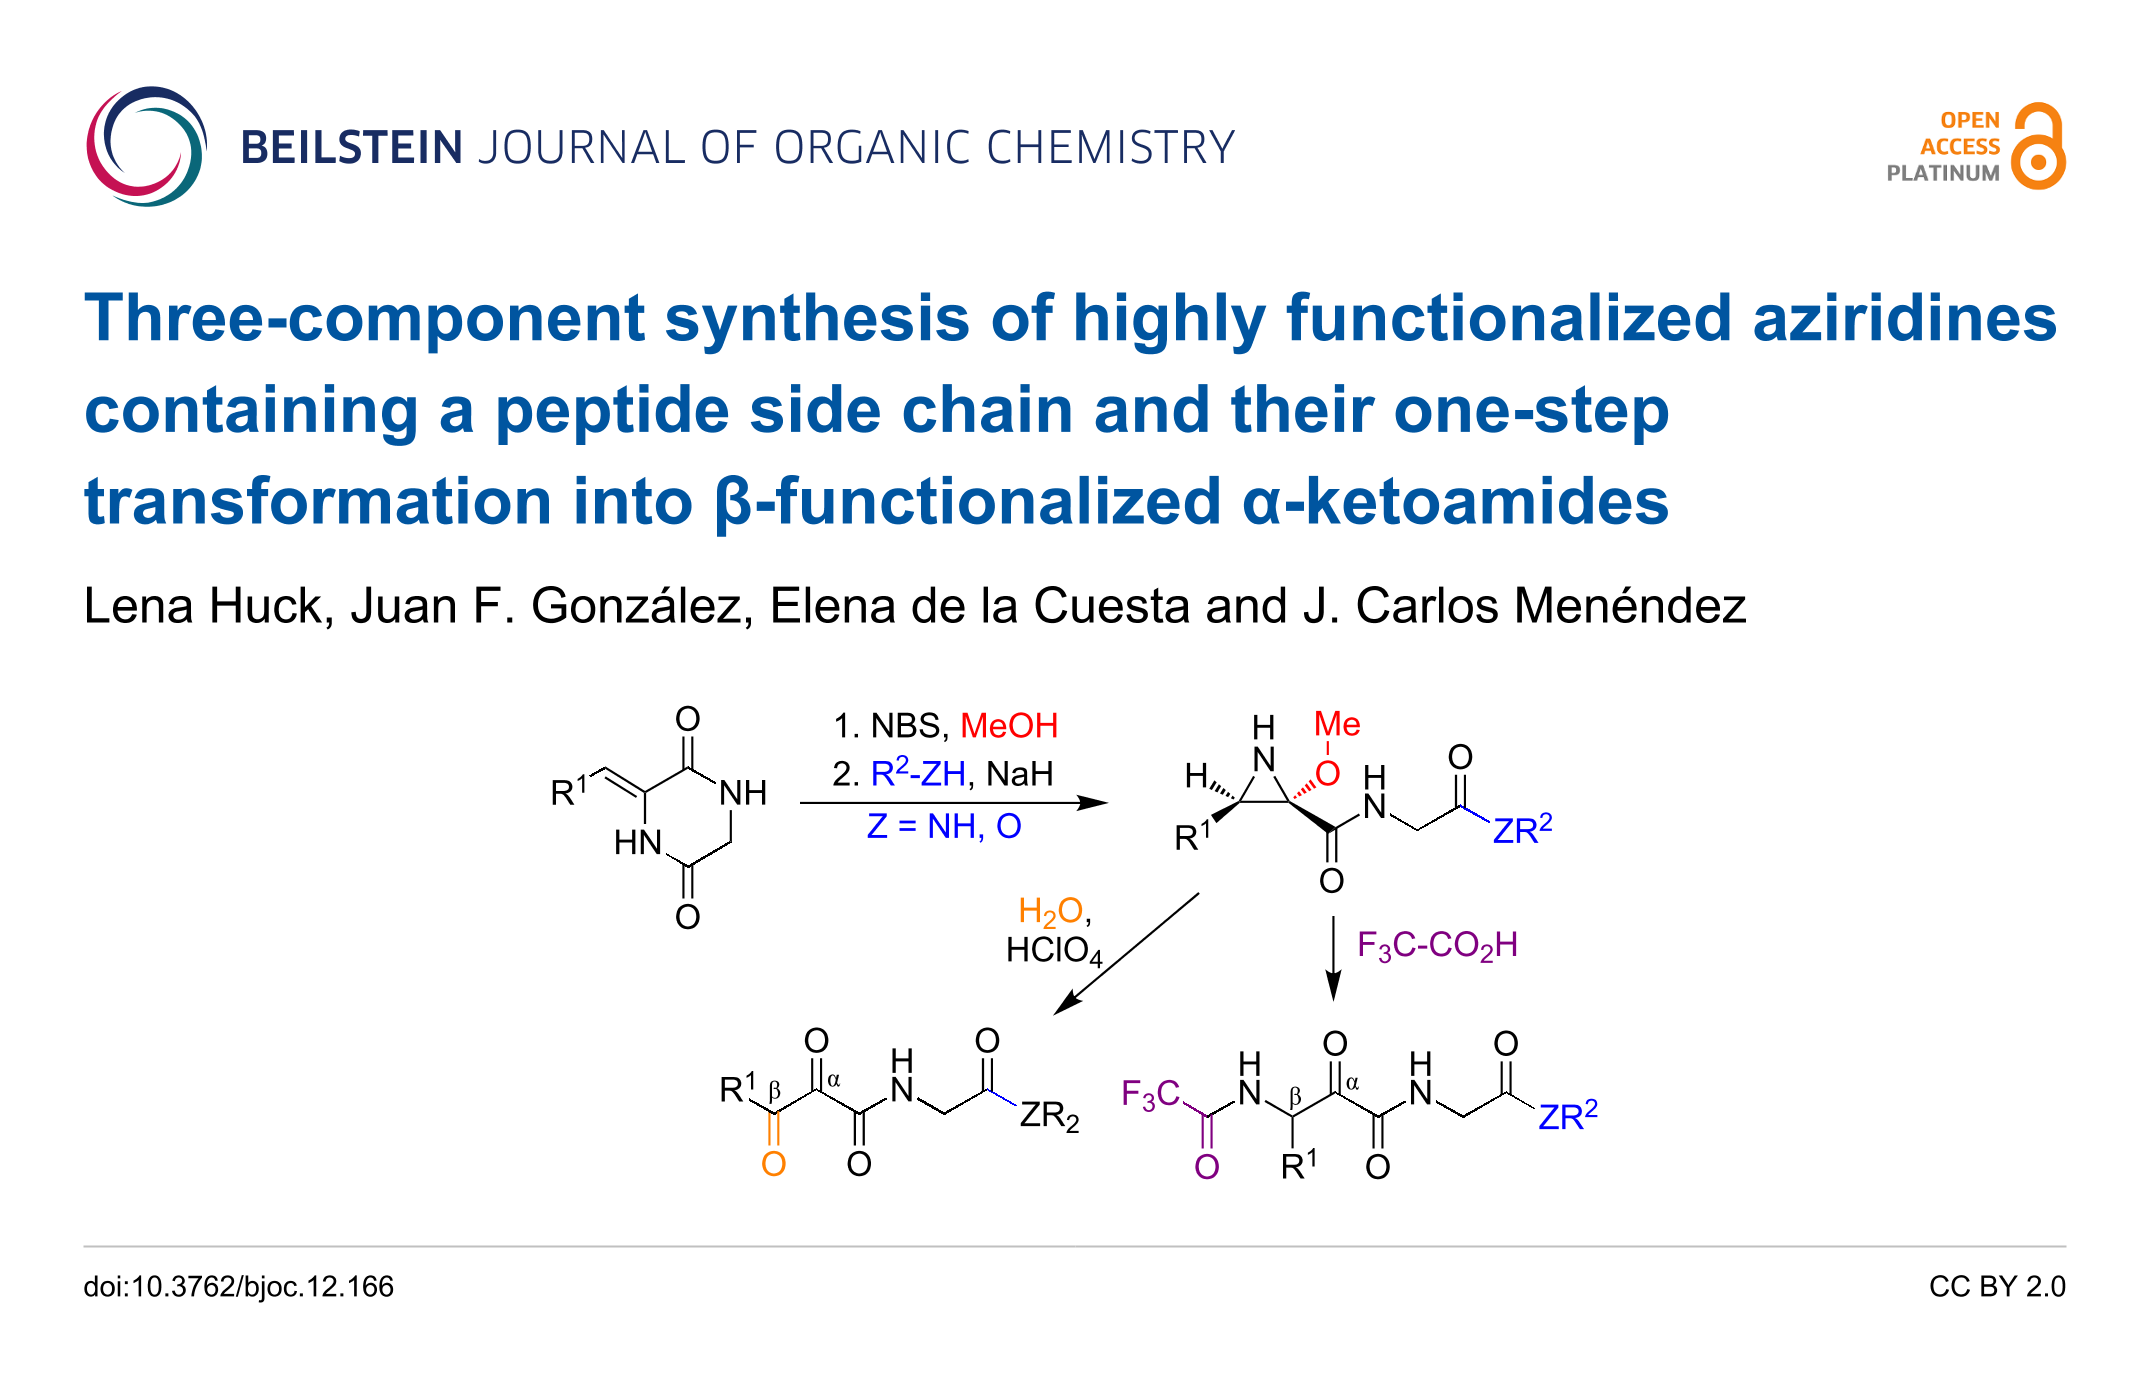 Three-component synthesis of highly functionalized